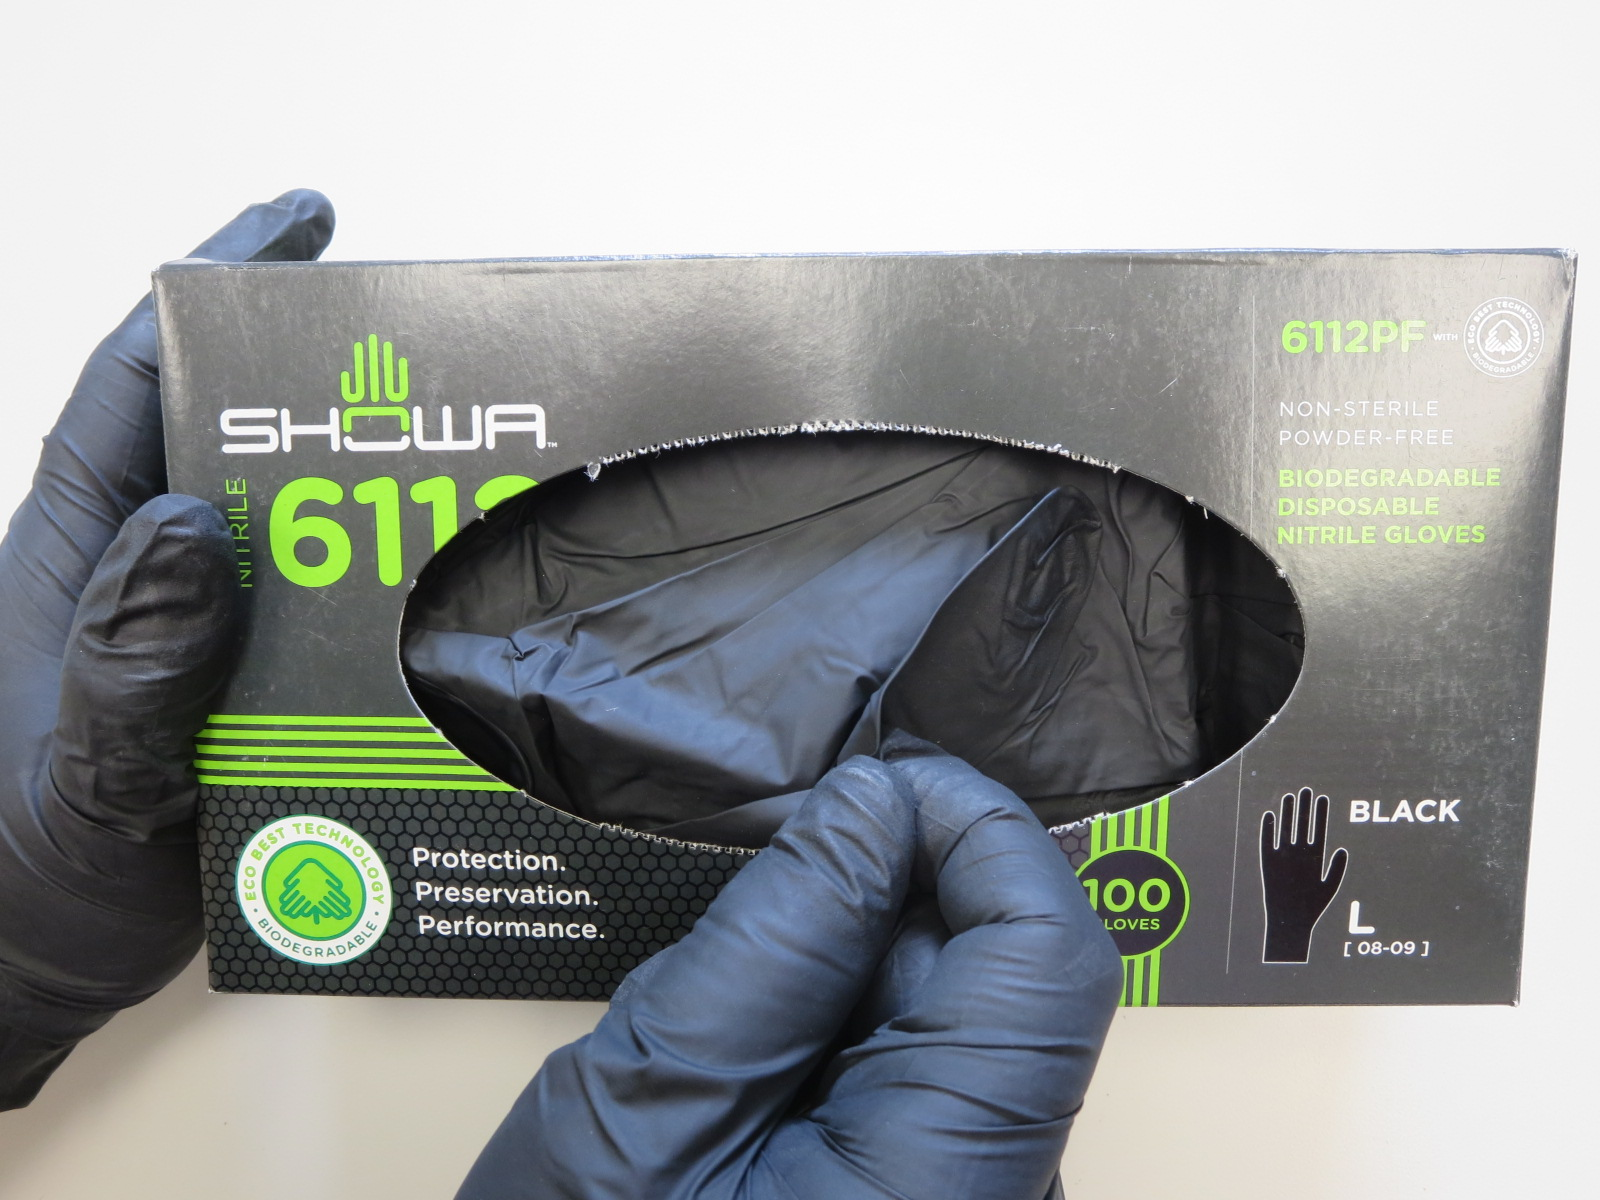 N-DEX® Black Biodegradable Powder-Free Latex-Free Nitrile Gloves